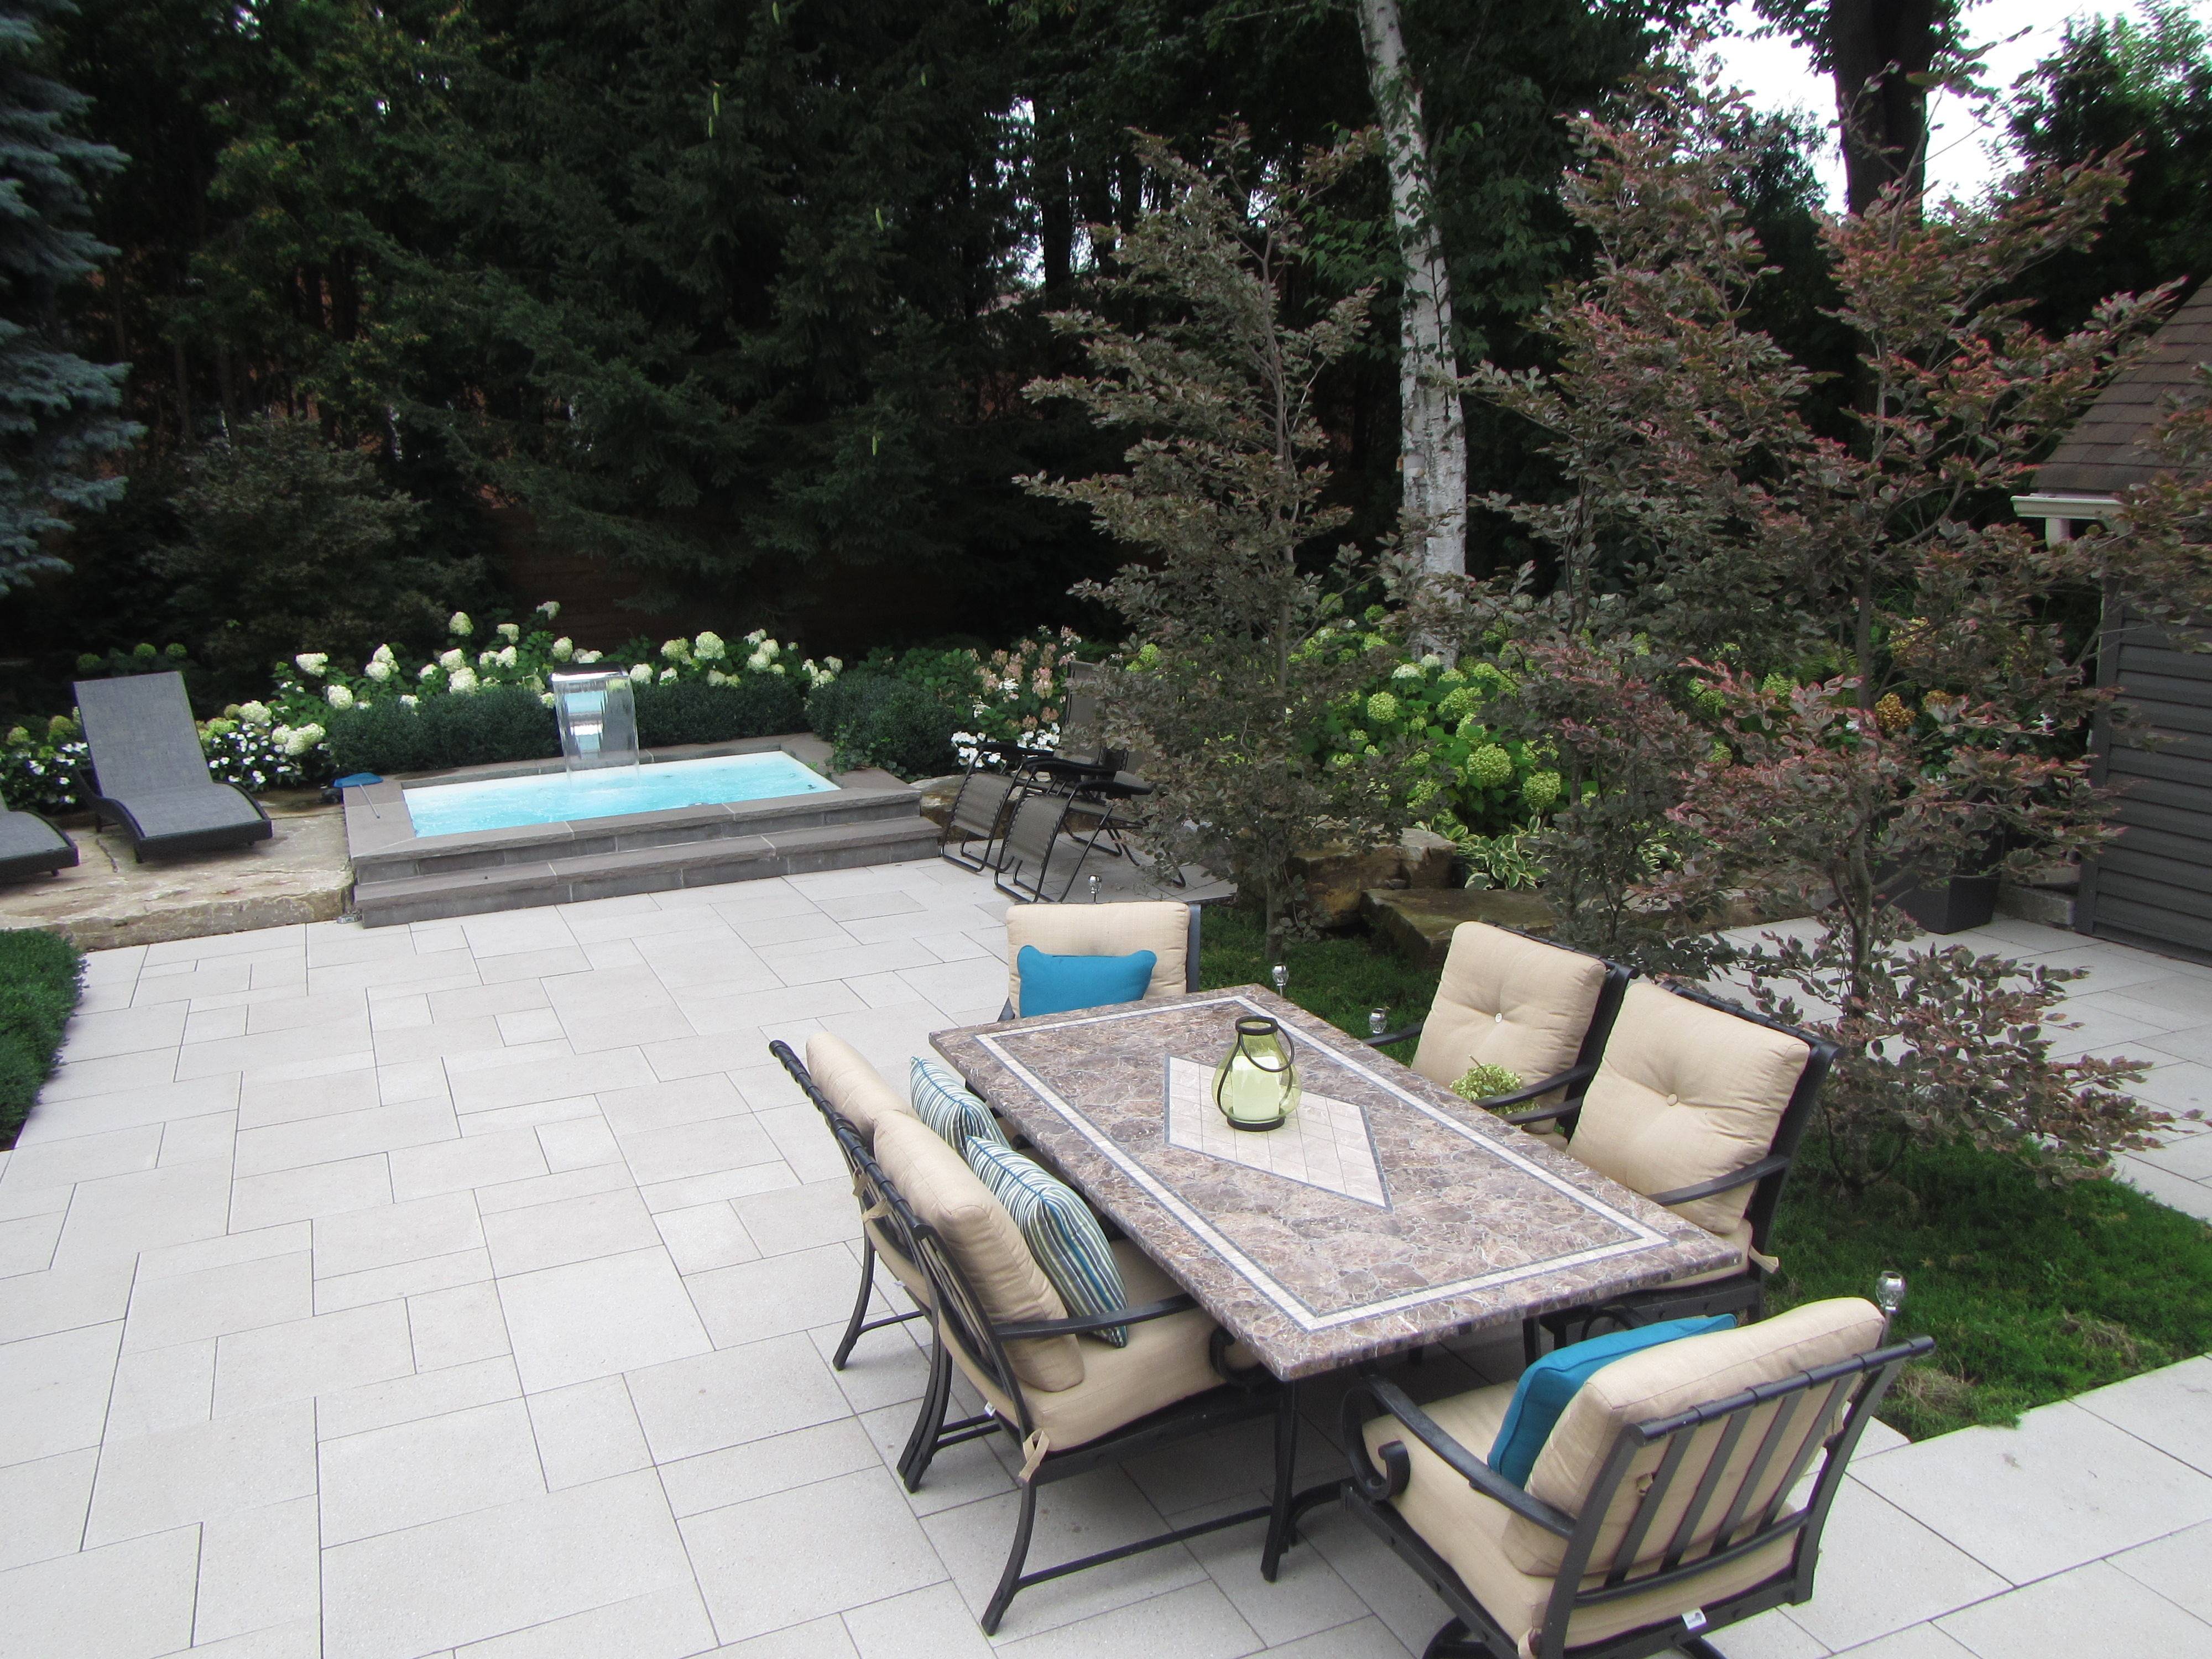 Outdoor Dinning and swimming area